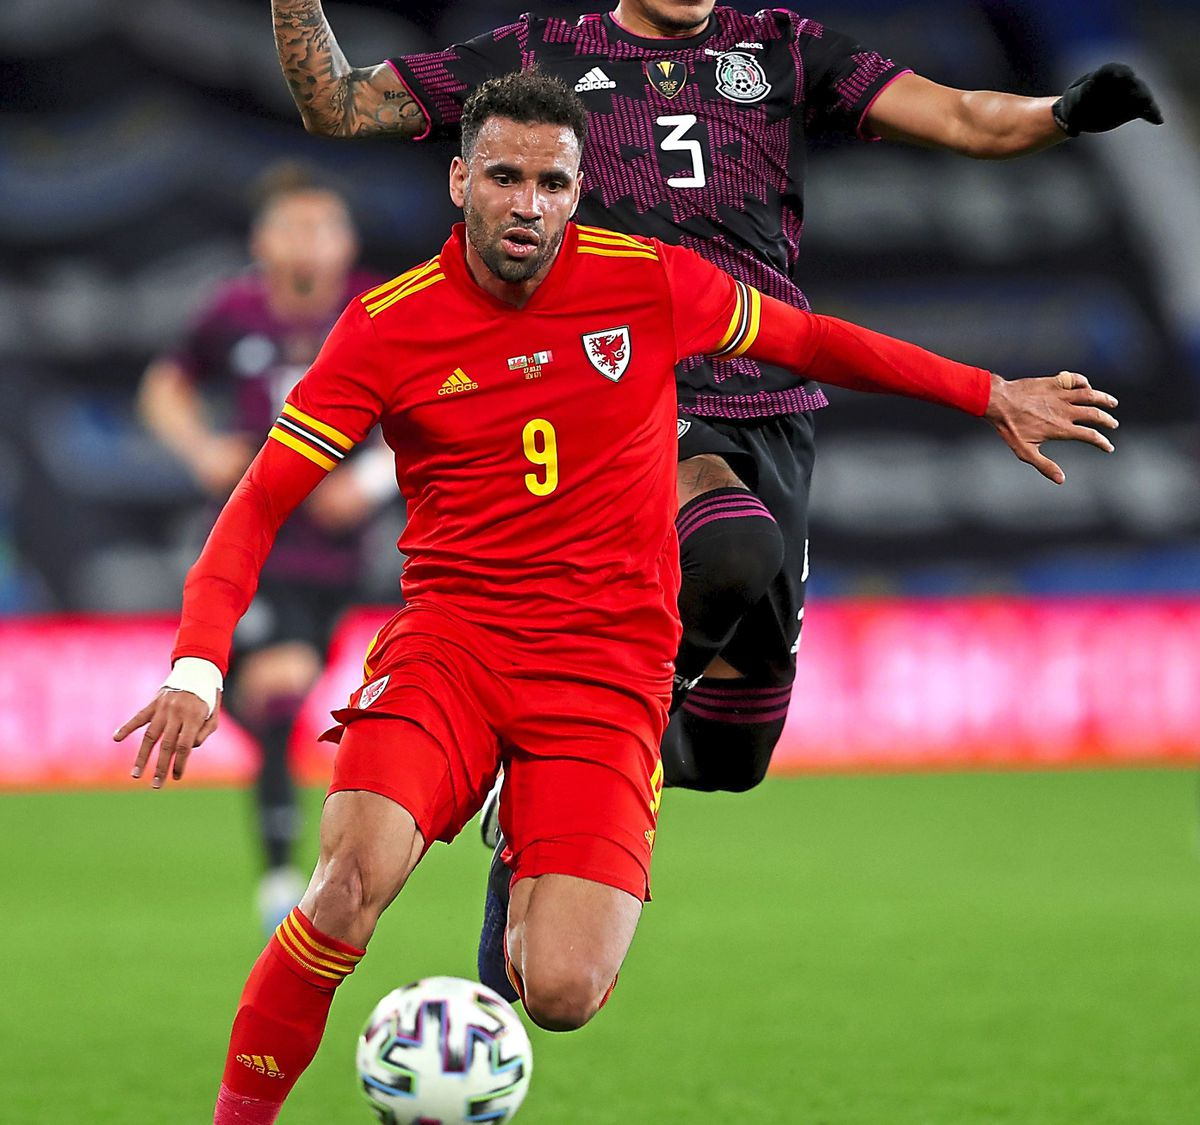 Wales' Hal Robson-Kanu (left) and Mexico's Carlos Salcedo battle for the ball during the international friendly at the Cardiff City Stadium, Cardiff. Picture date: Saturday March 27, 2021. PA Photo. See PA story SOCCER Wales. Photo credit should read: David Davies/PA Wire. Use subject to restrictions. Editorial use only, no commercial use without prior consent from rights holder.